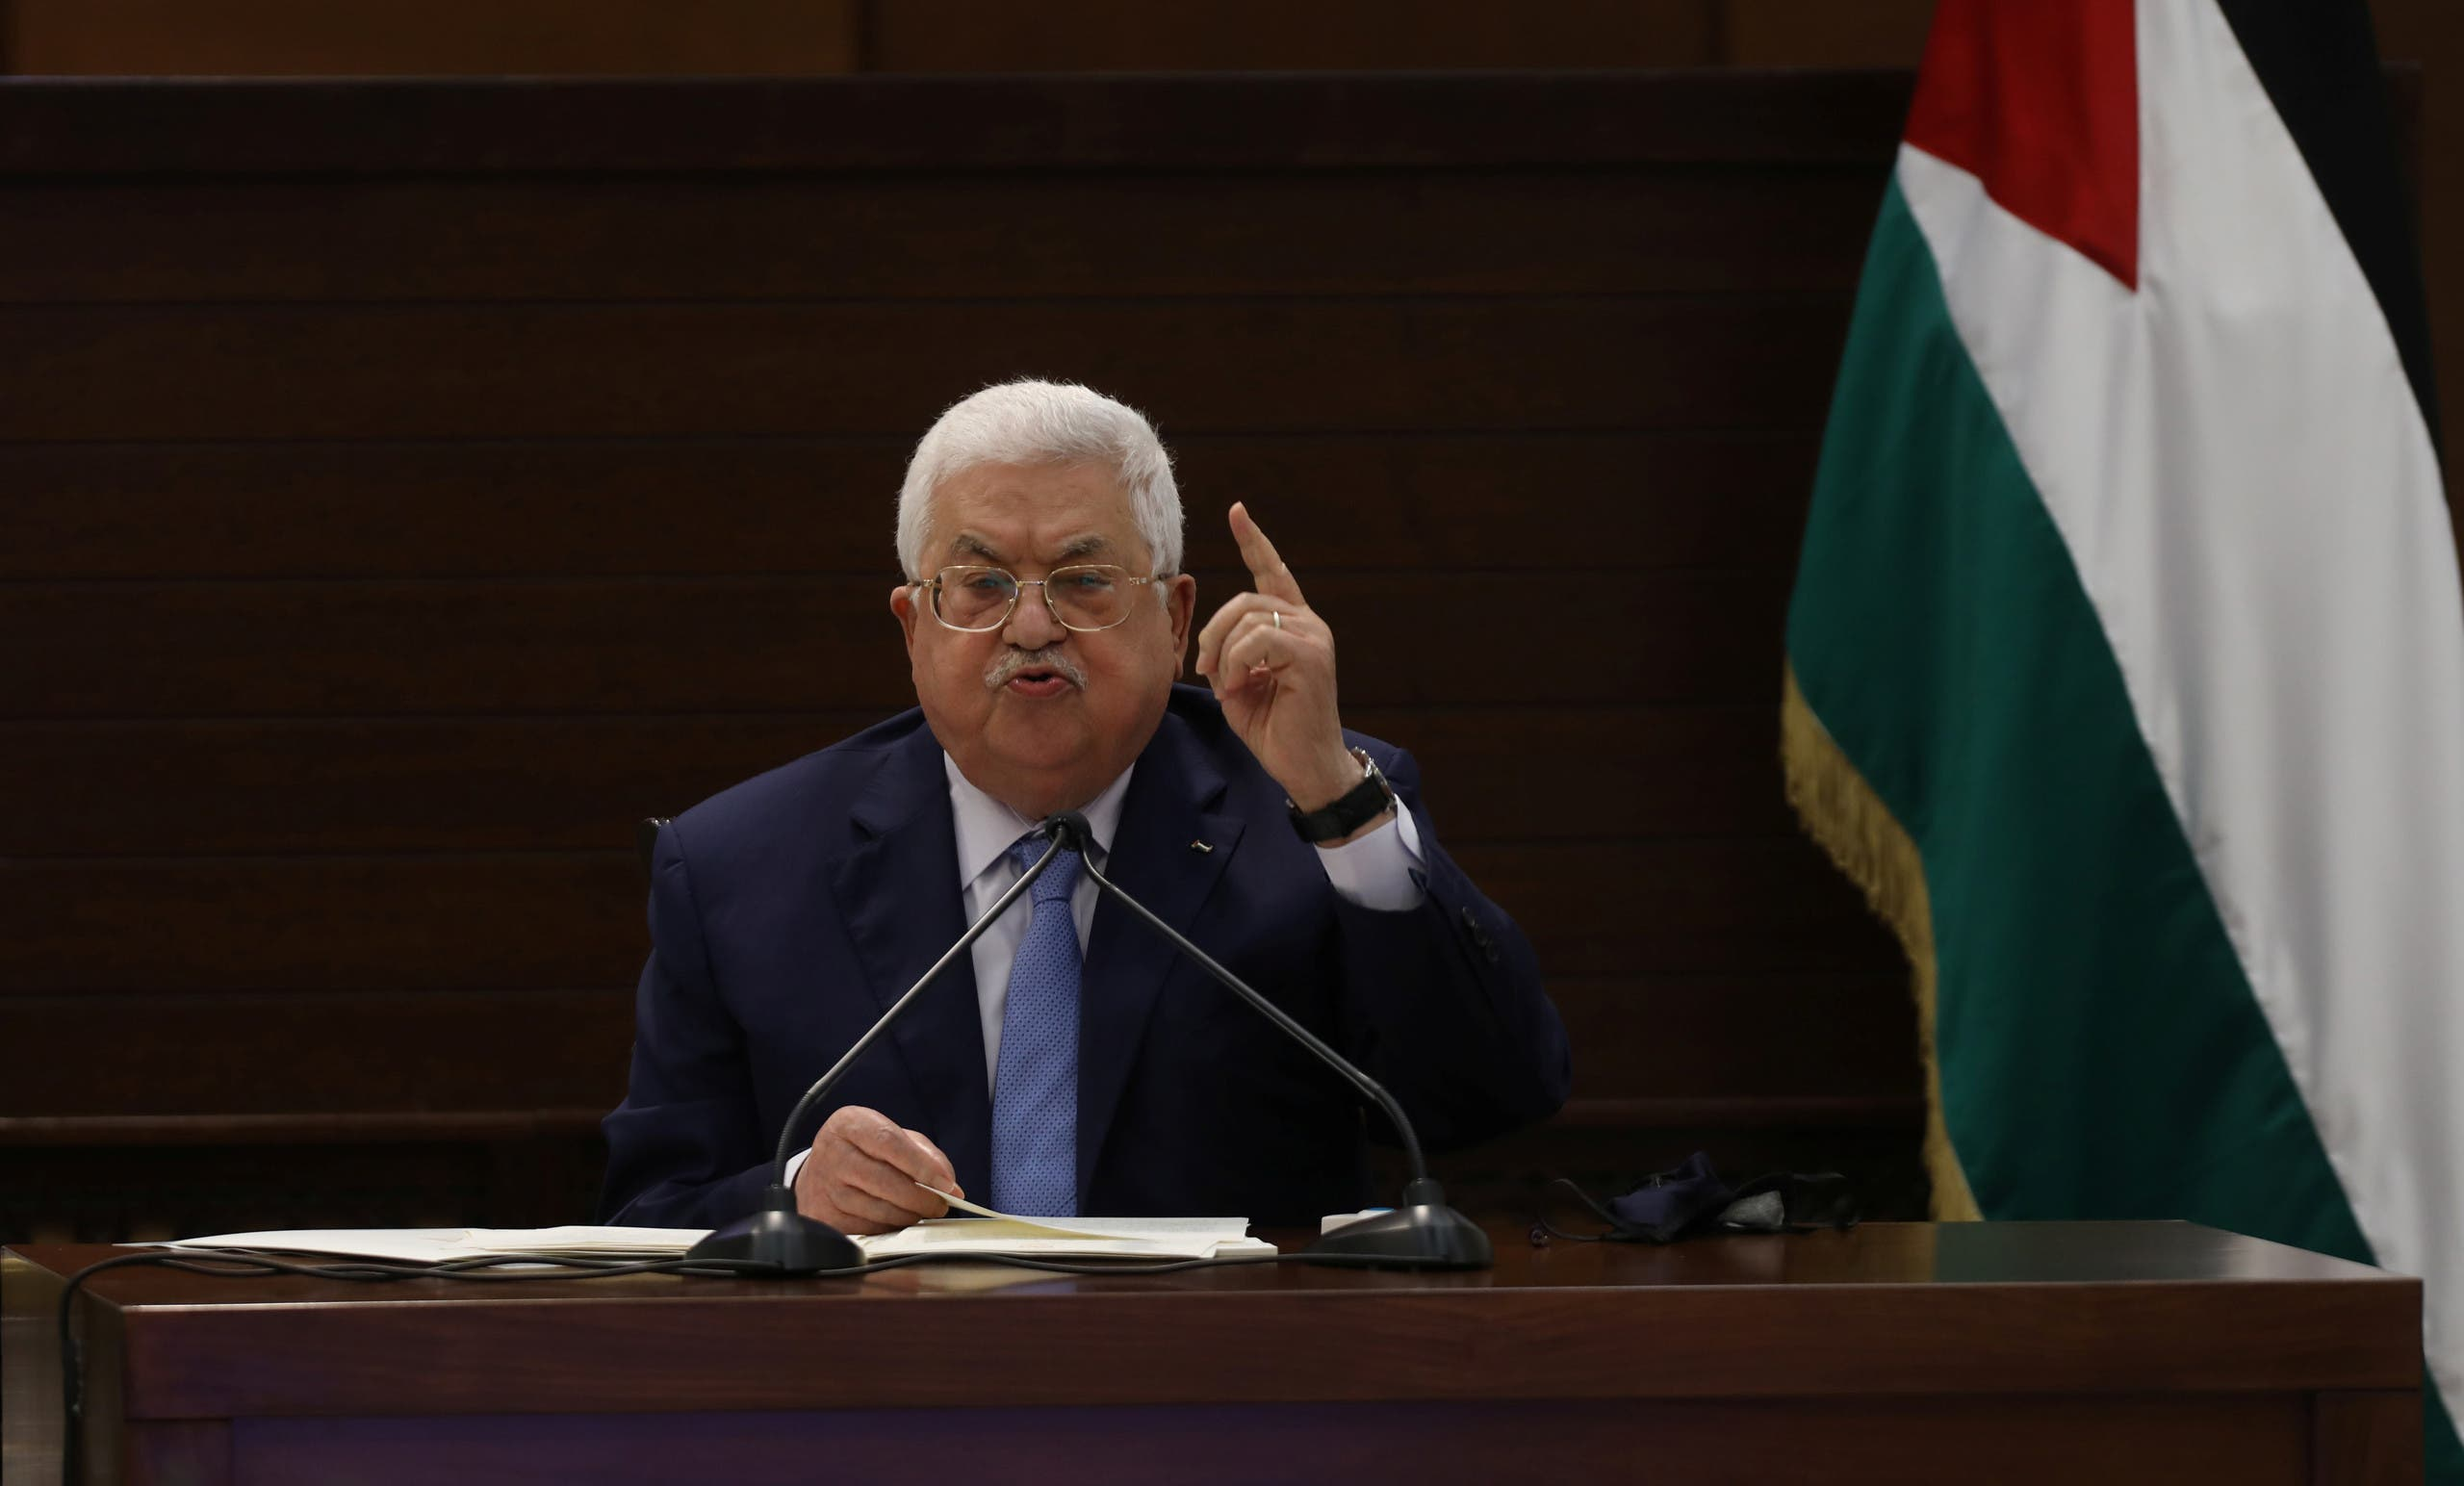 Palestinian President Mahmoud Abbas attends a virtual meeting with Palestinian factions over Israel and the United Arab Emirates' deal to normalise ties, in Ramallah in the Israeli-occupied West Bank September 3, 2020. (Reuters)